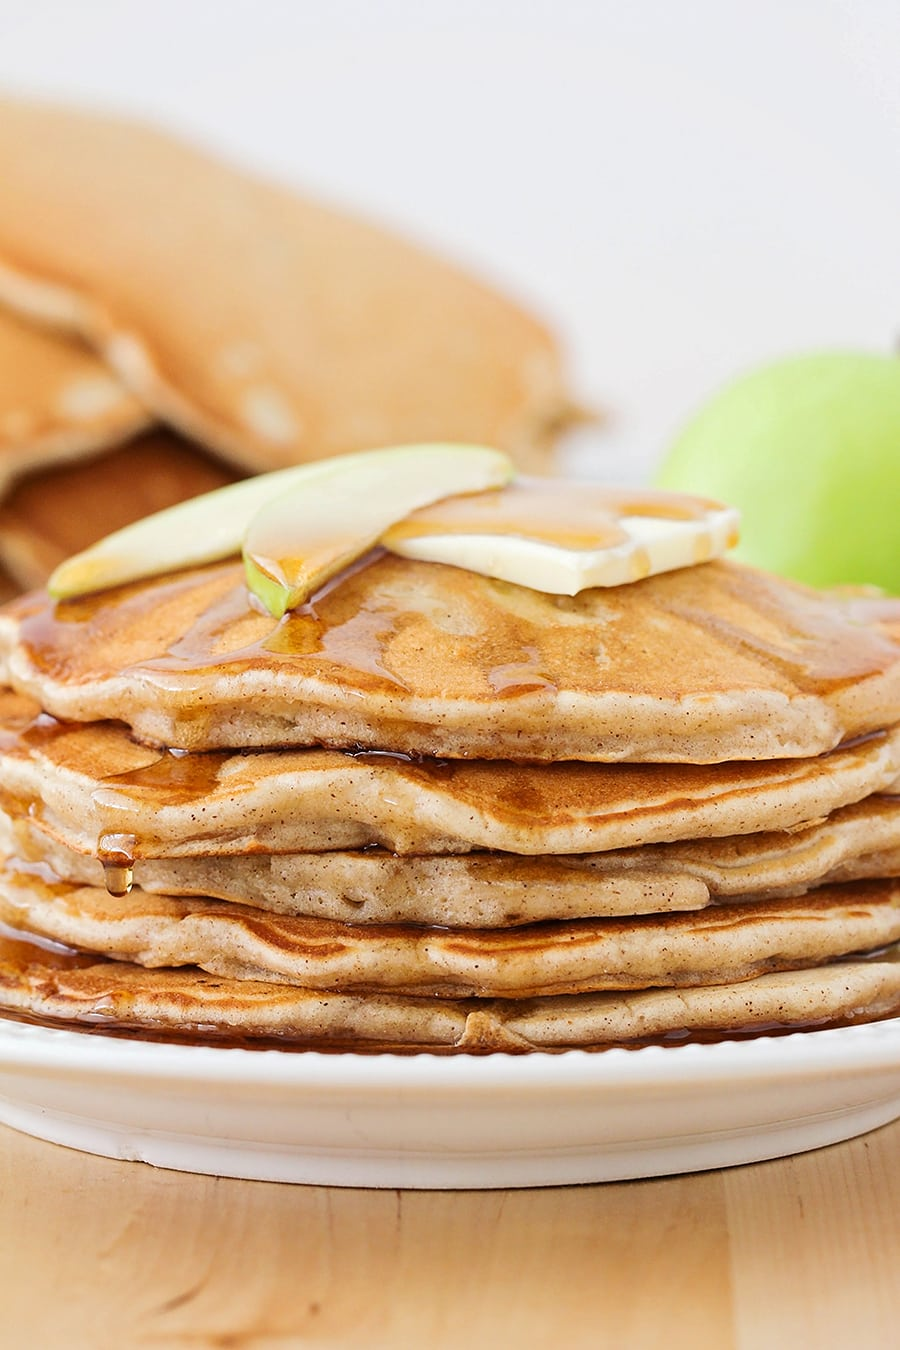 These Apple Cinnamon Pancakes are quick to whip up! They are light & fluffy & have all the flavors of fall!